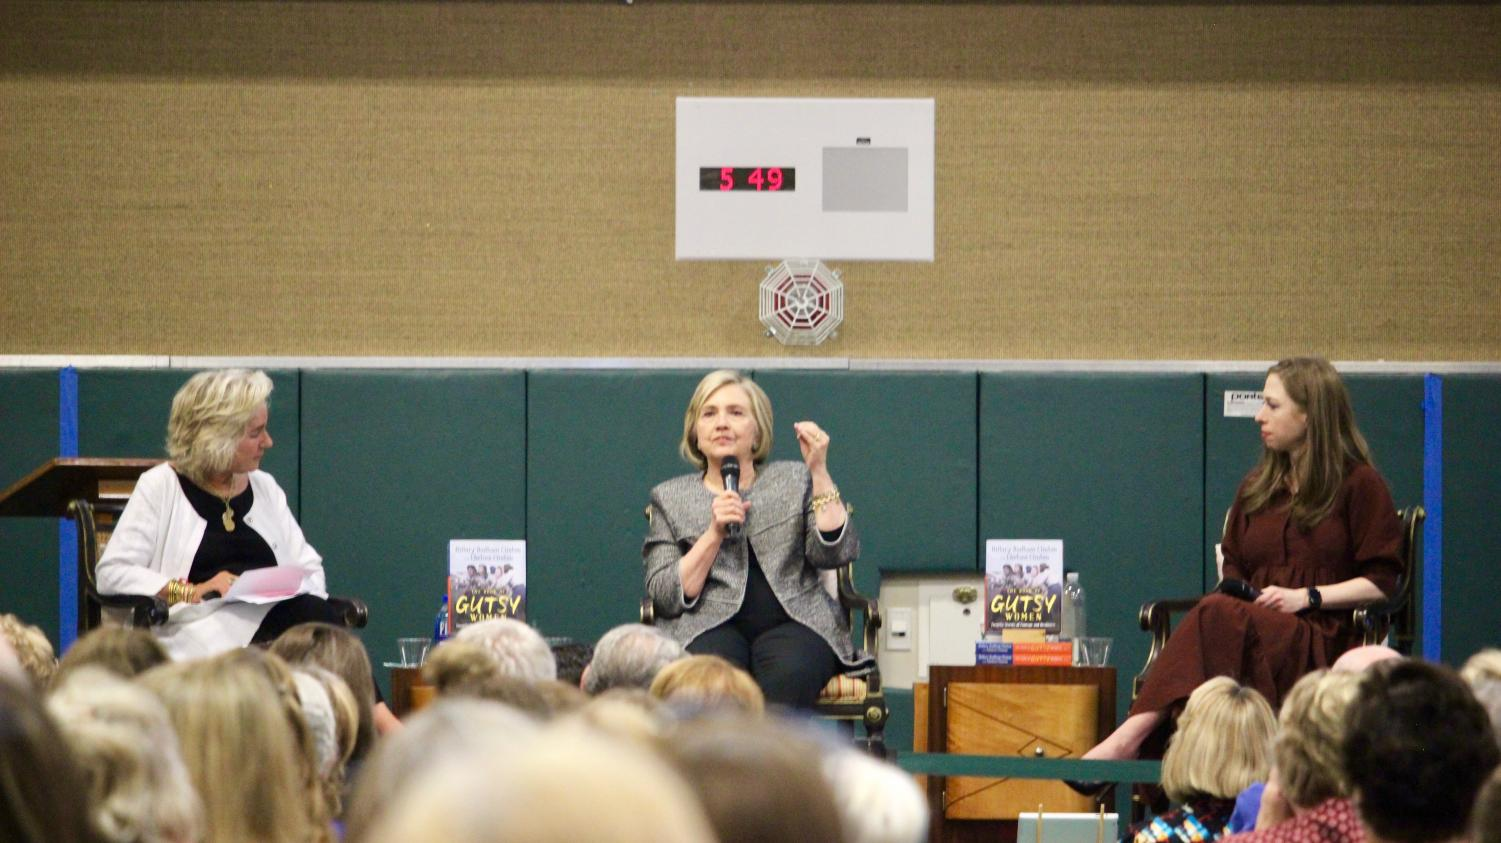 Former First Lady and presidential candidate Hillary Clinton (middle) speaks about The Book of Gutsy Women, a novel she wrote with her daughter, Chelsea (right), as moderator Susie Buell (left) leads the discussion. Students, parents, teachers and families attended the event at the San Ramon Valley High School gym and were empowered by the conversation.